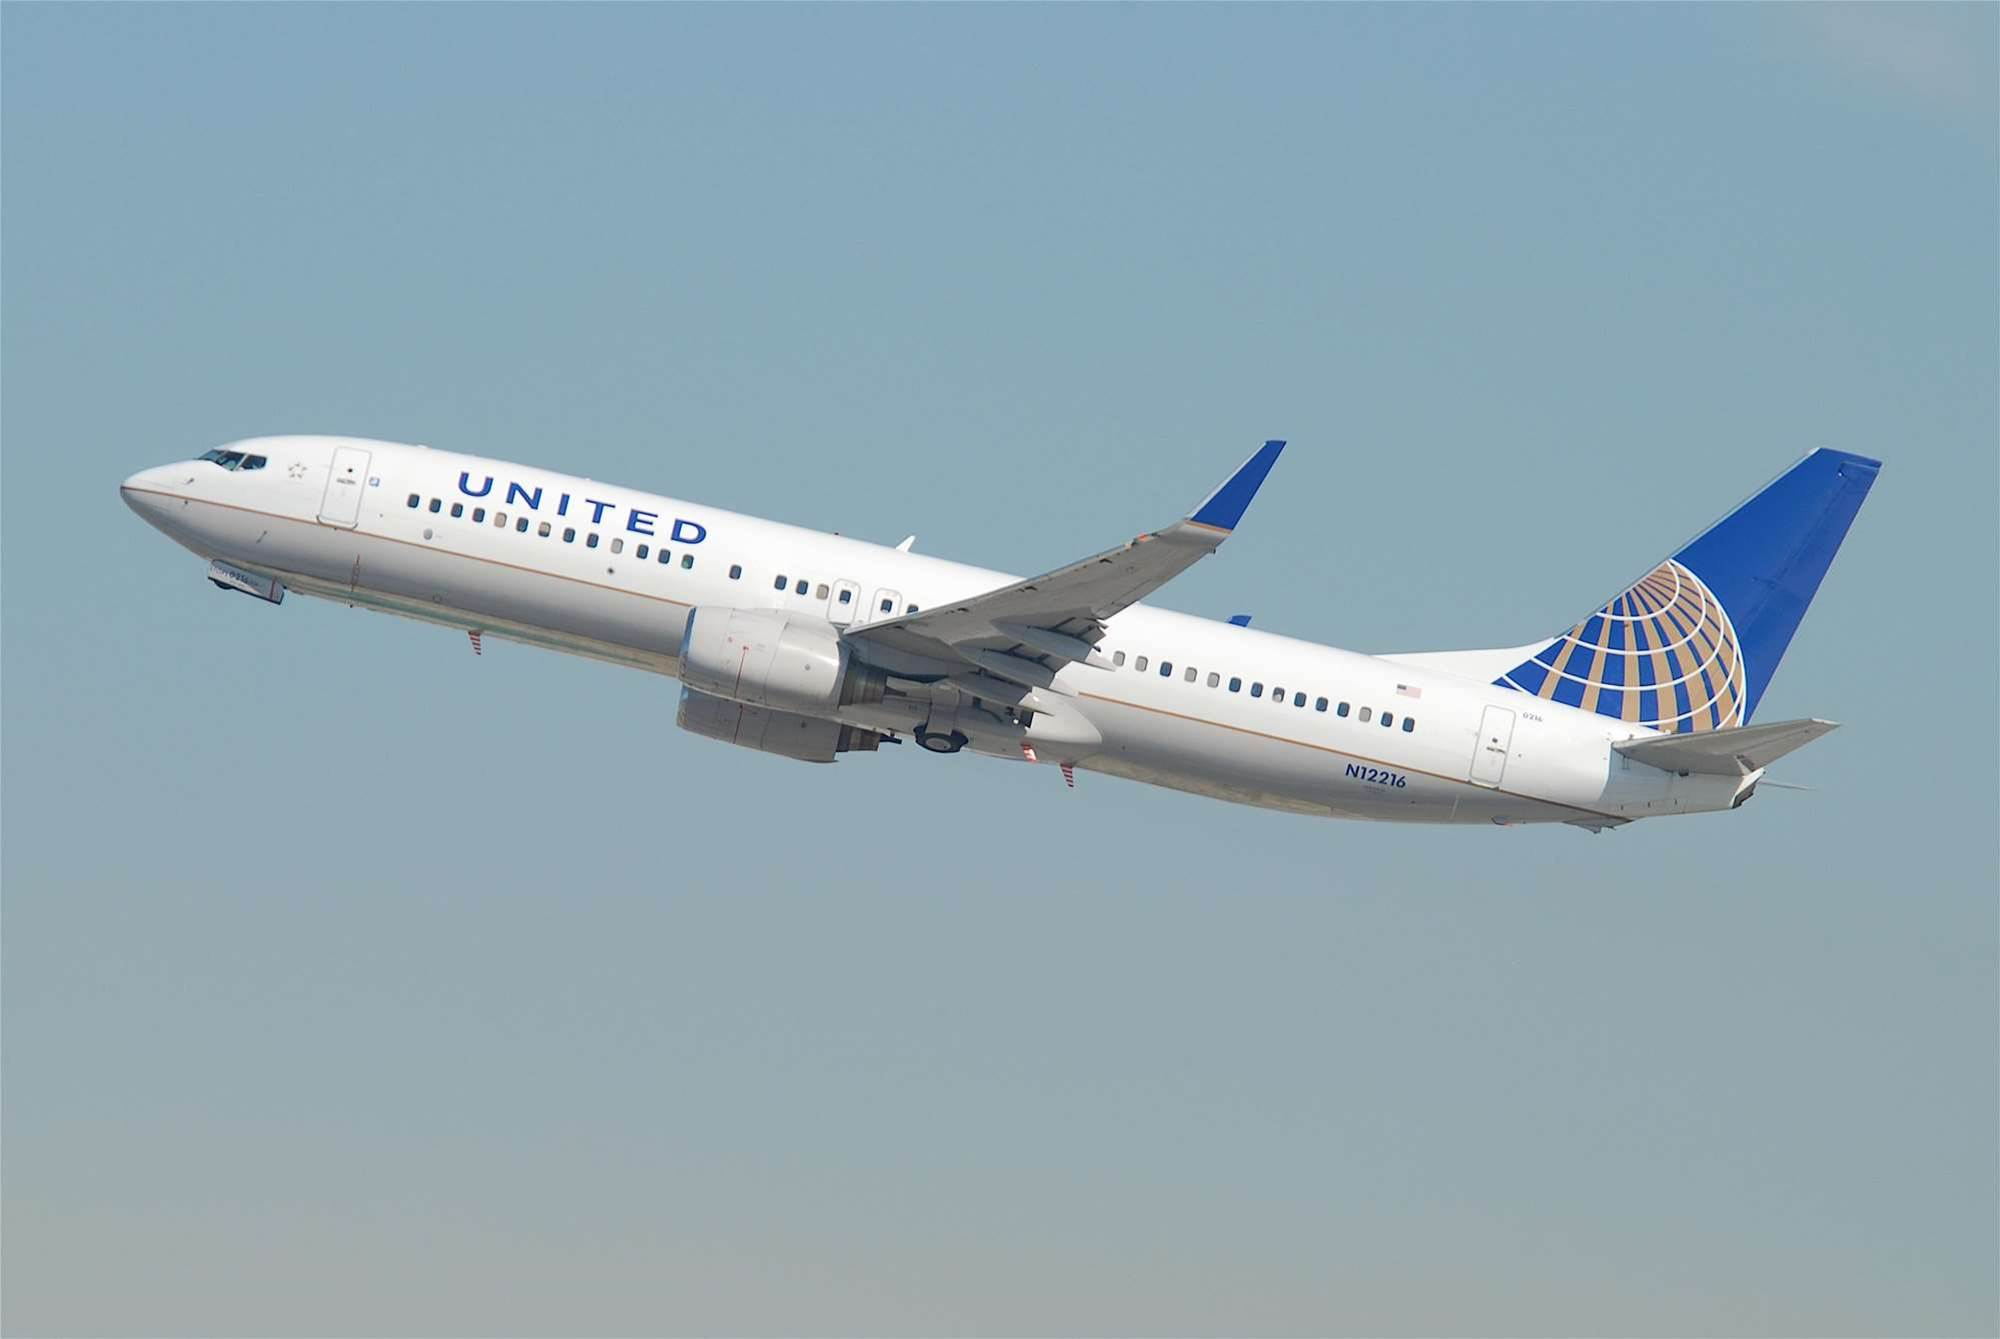 United Airlines syncs Windows, Linux patch cycles